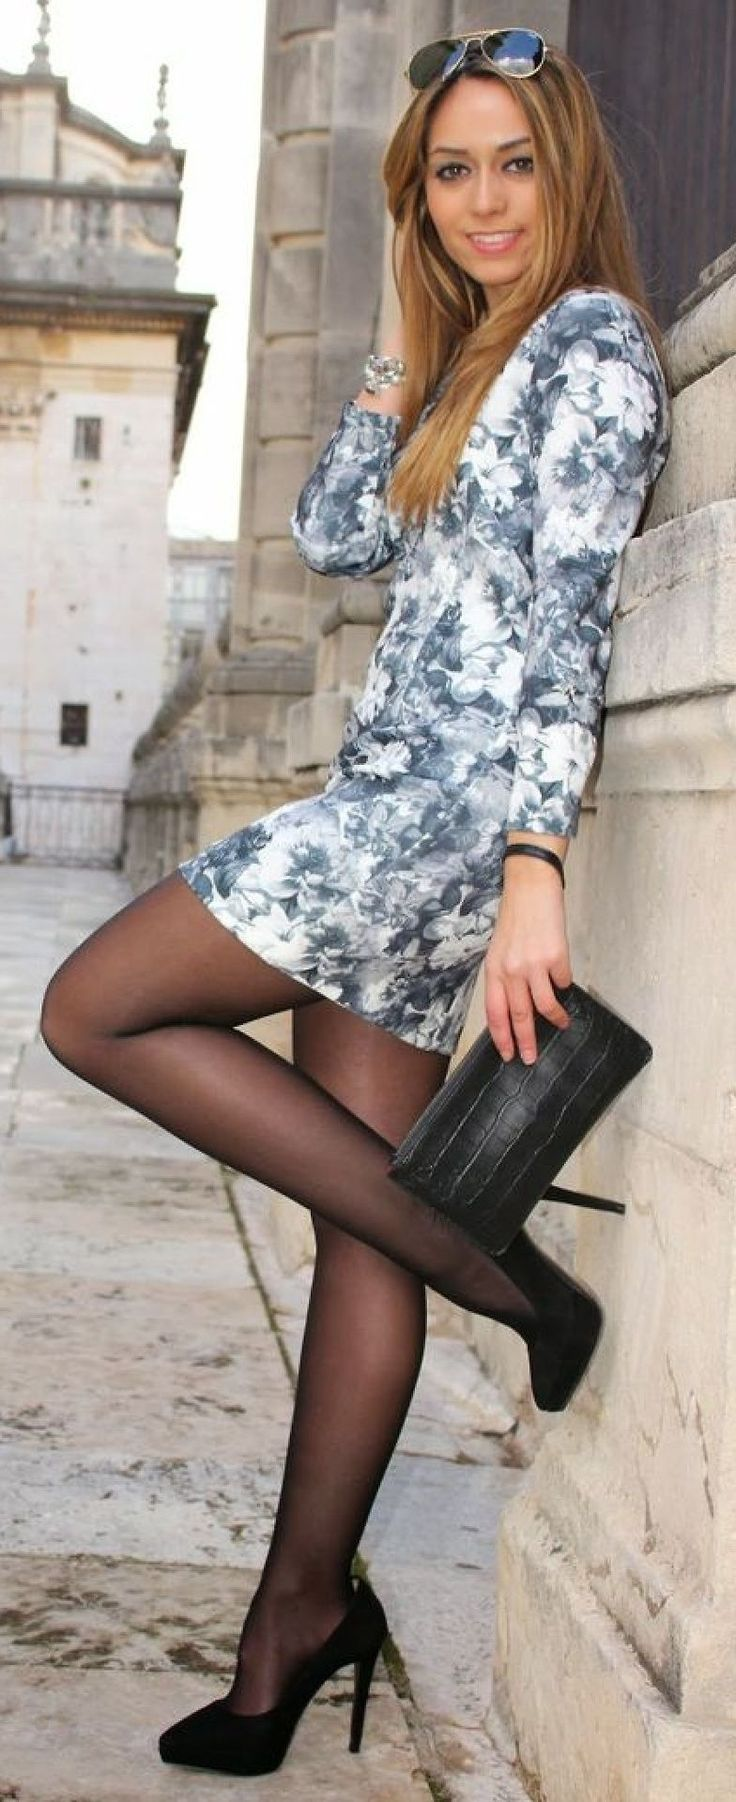 Pin By Sun Tan On Great Legs  Mode Femme, Mode, Sexy-9211